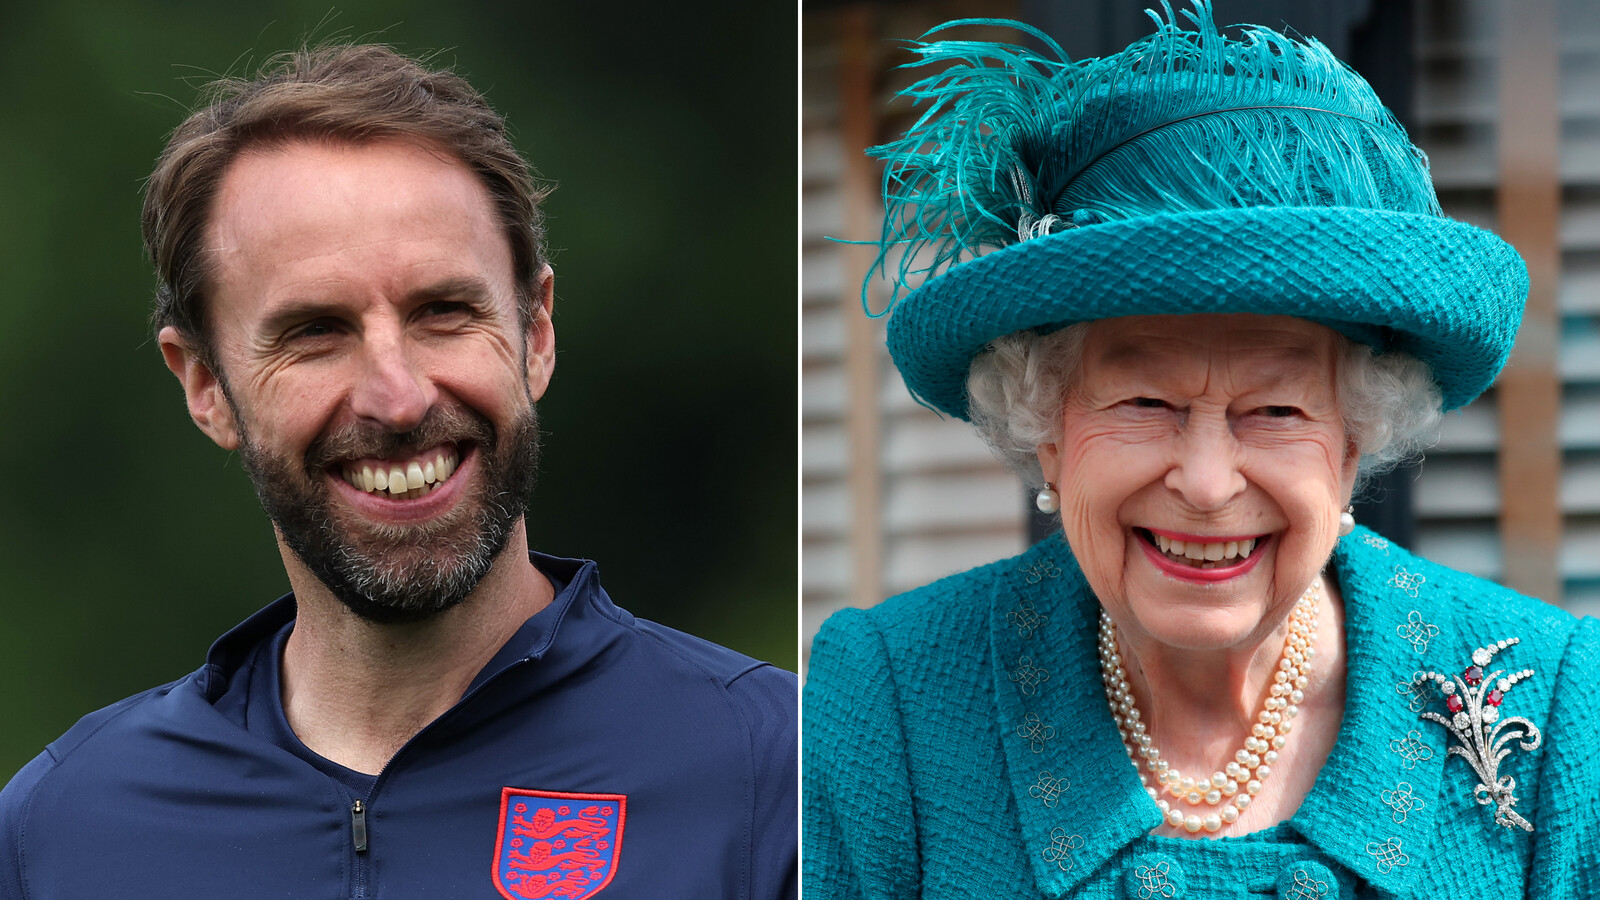 No pressure: Queen Elizabeth sends 'good wishes' to Gareth Southgate ahead of the Euro 2020 final